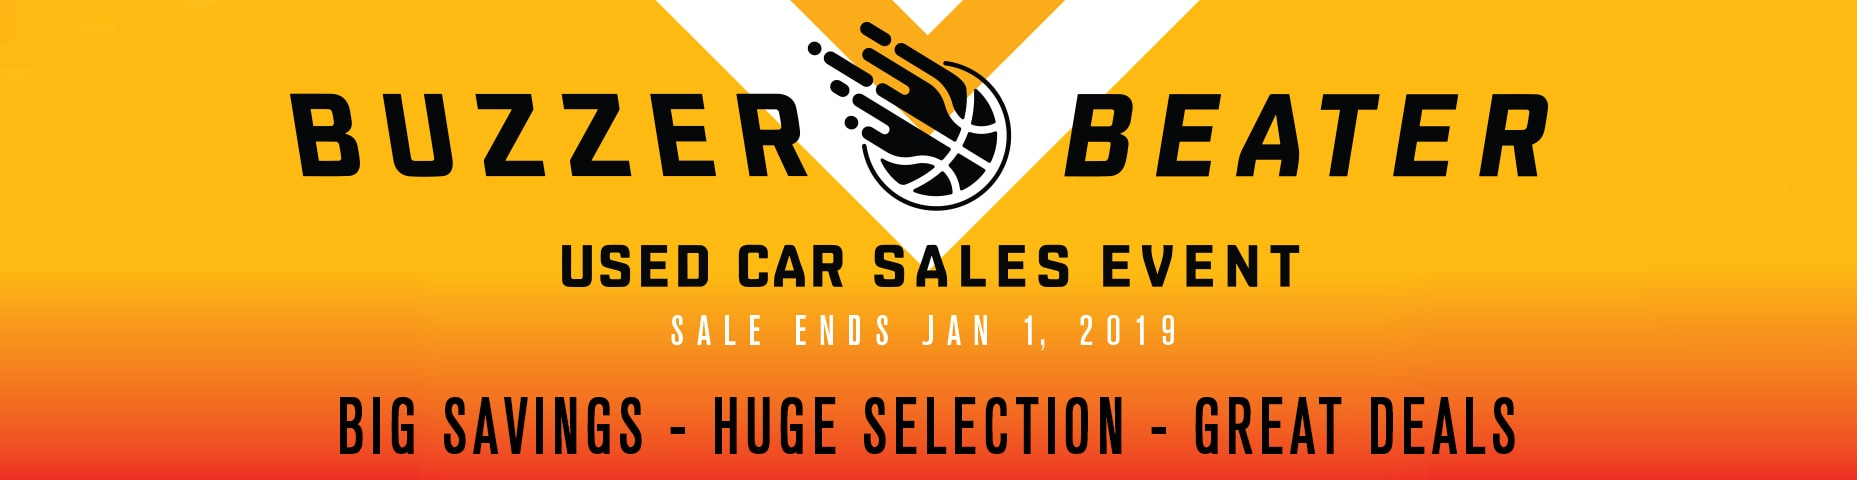 Buzzer Beater Used Car Sales Event at Larry H. Miller Colorado Chrysler Jeep